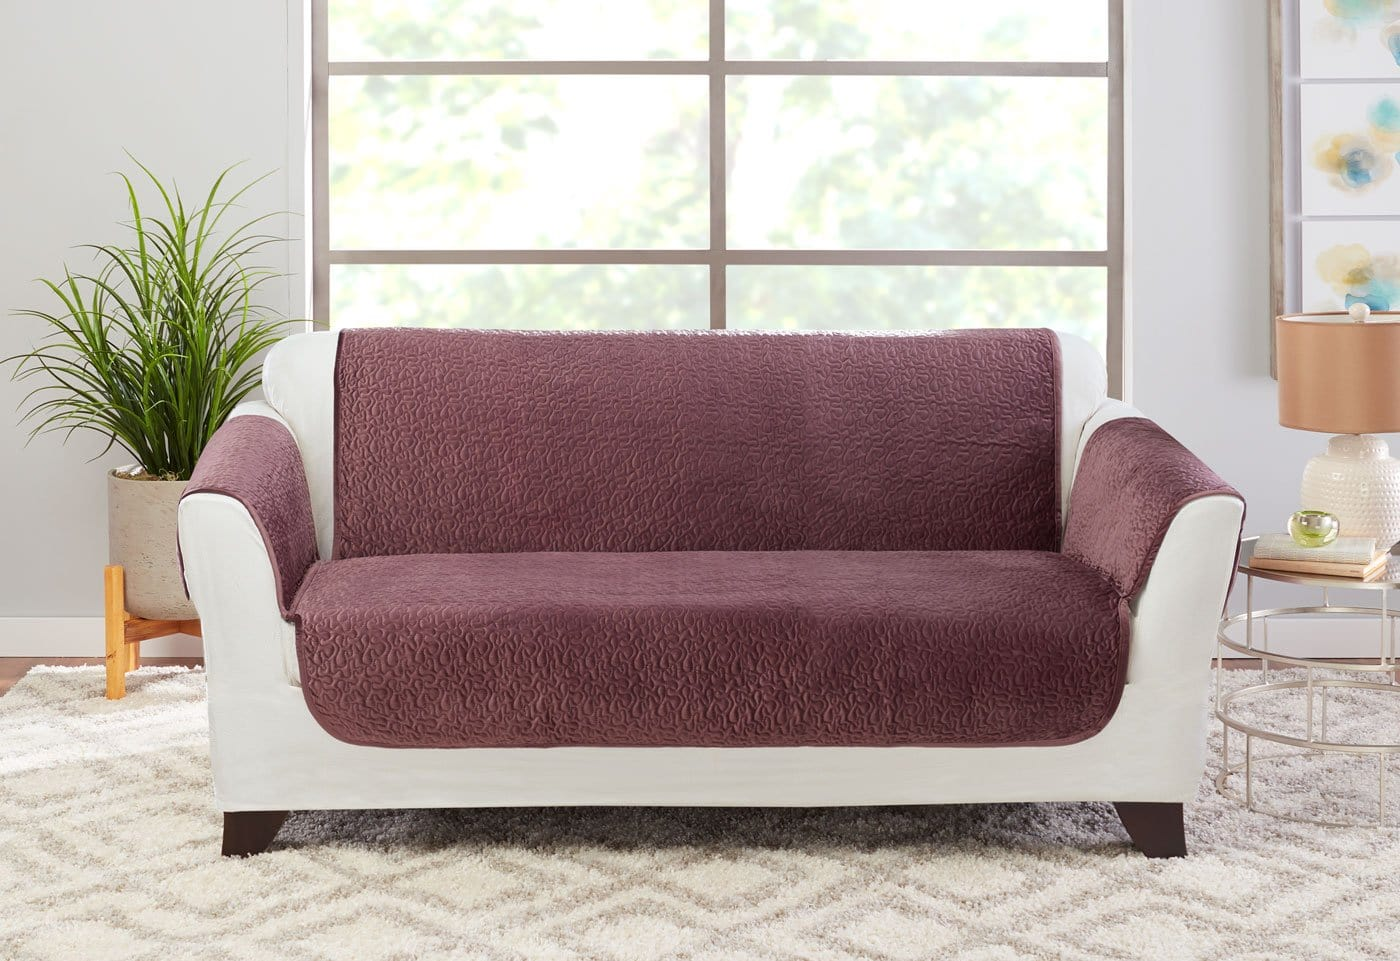 Elegant Vermicelli Loveseat Furniture Cover 100% Polyester Pet Furniture Cover Machine Washable - Loveseat / Mulberry